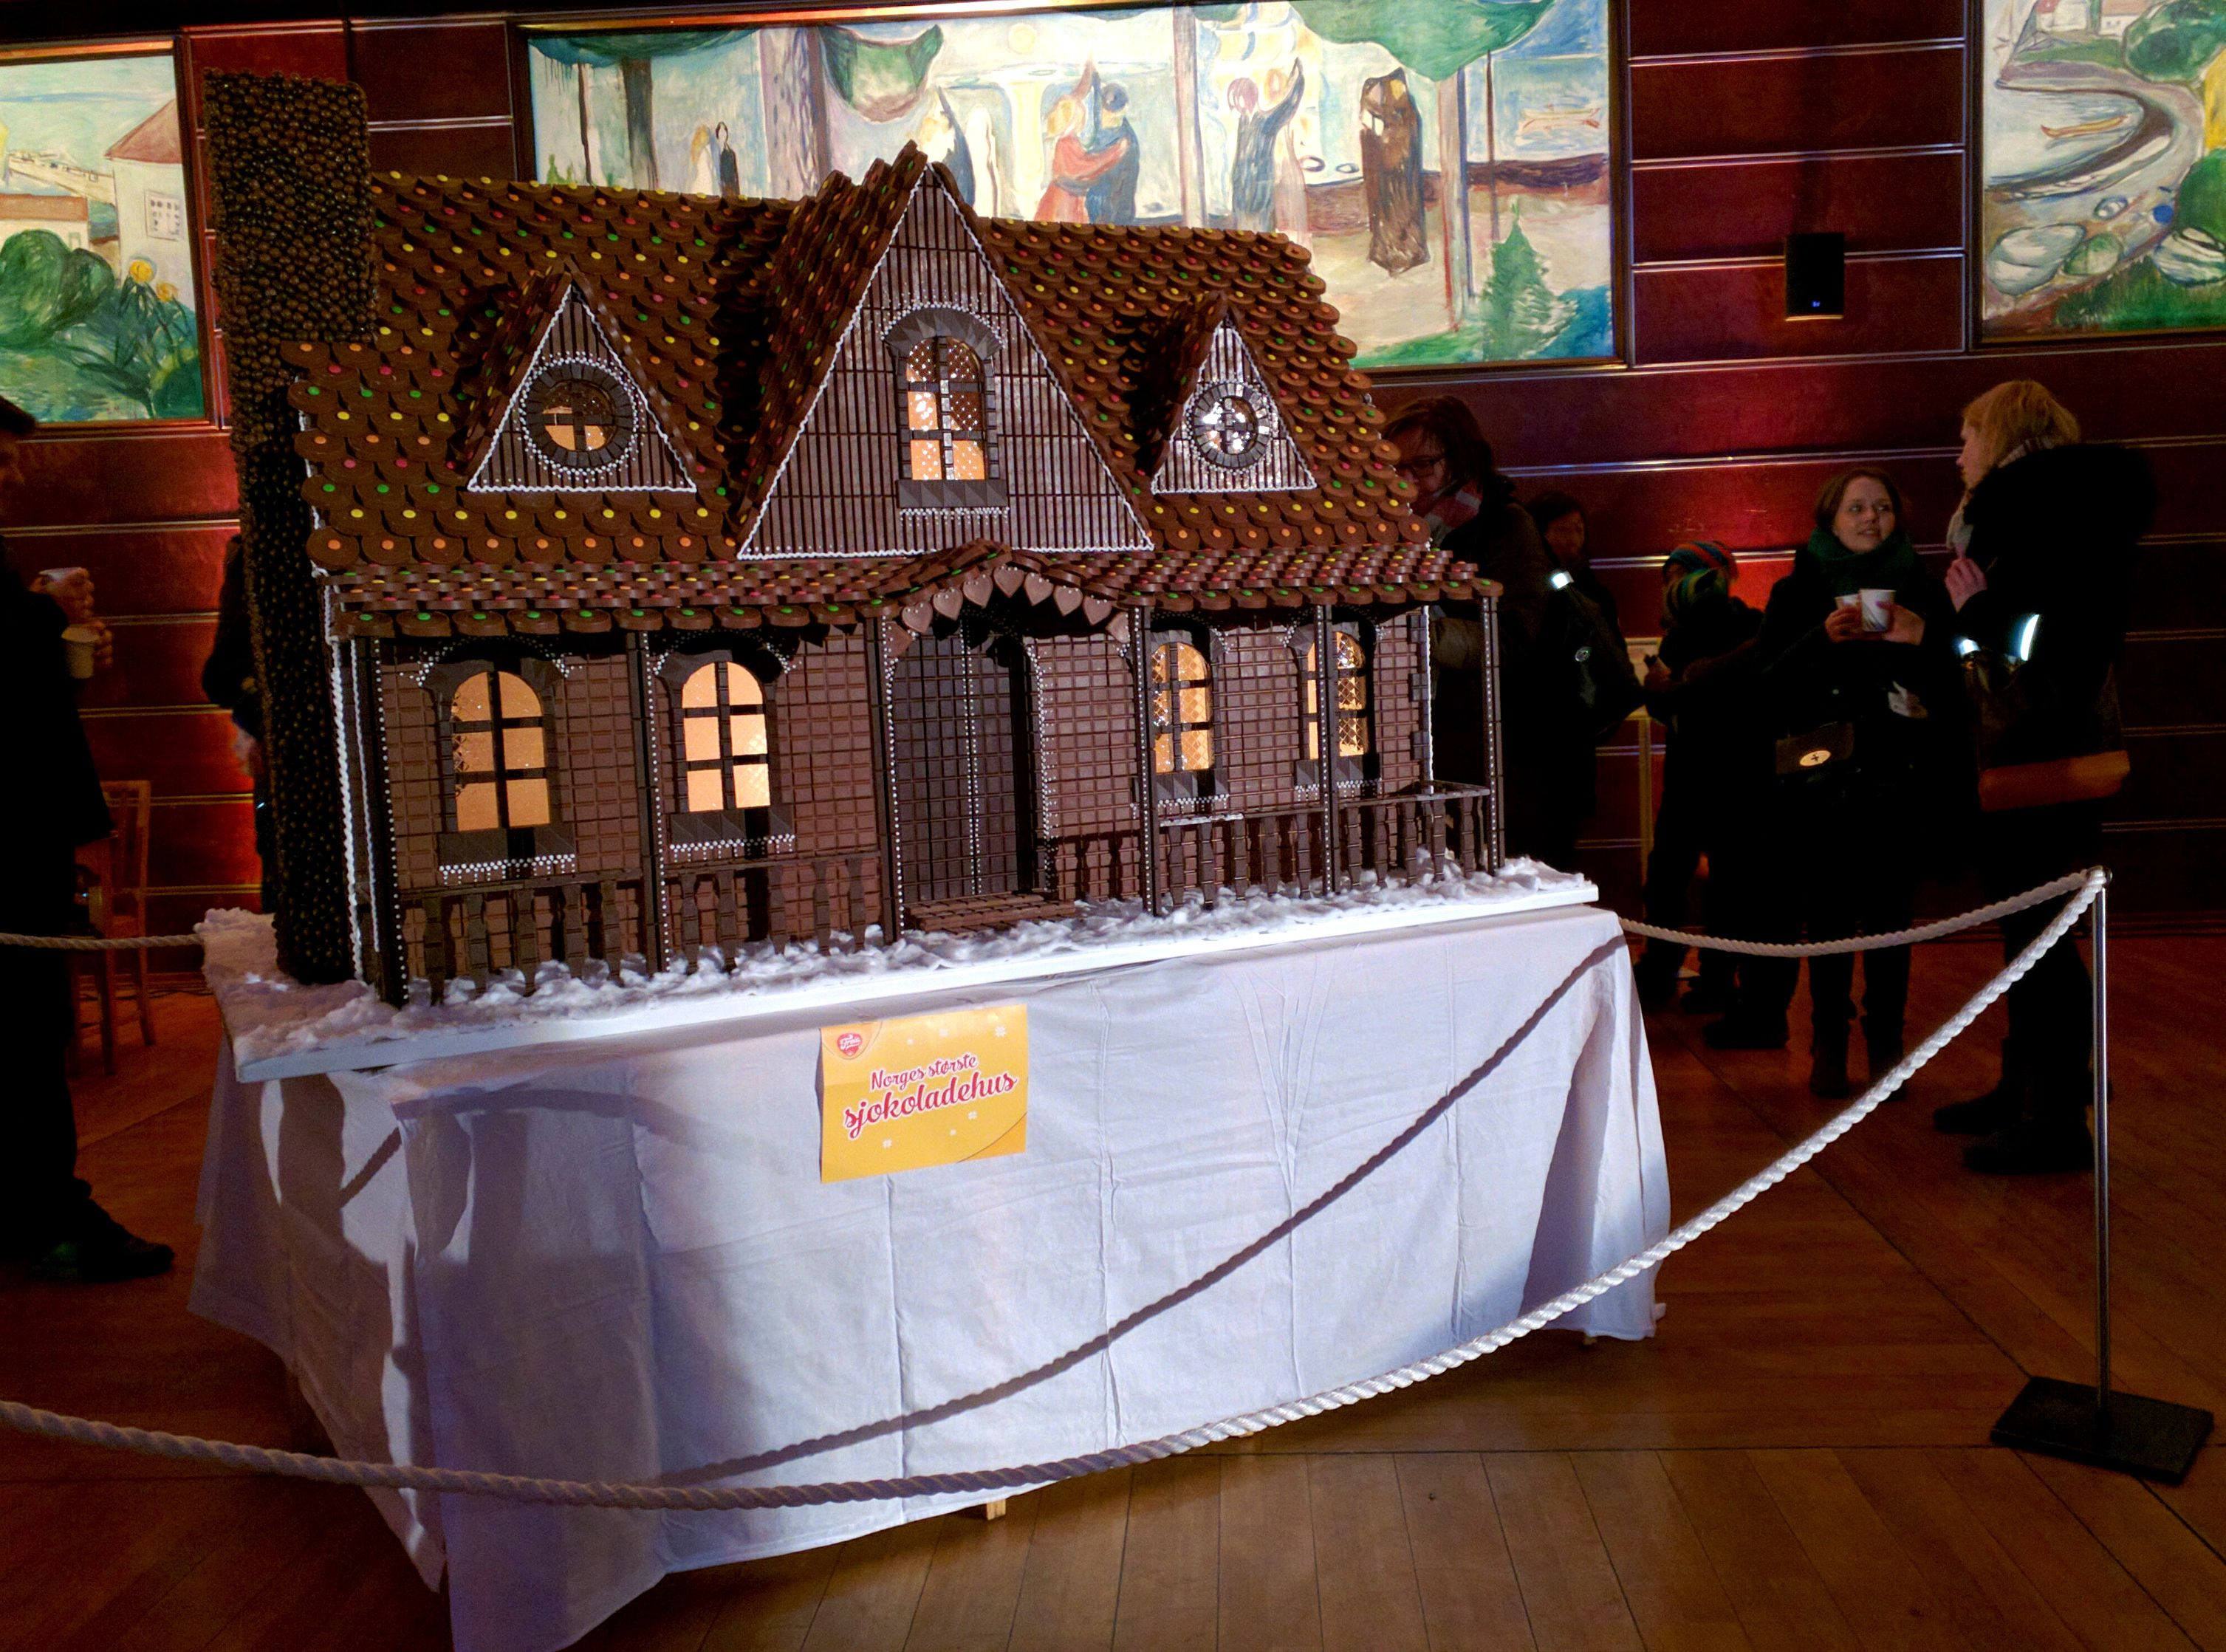 Norway's largest chocolate house